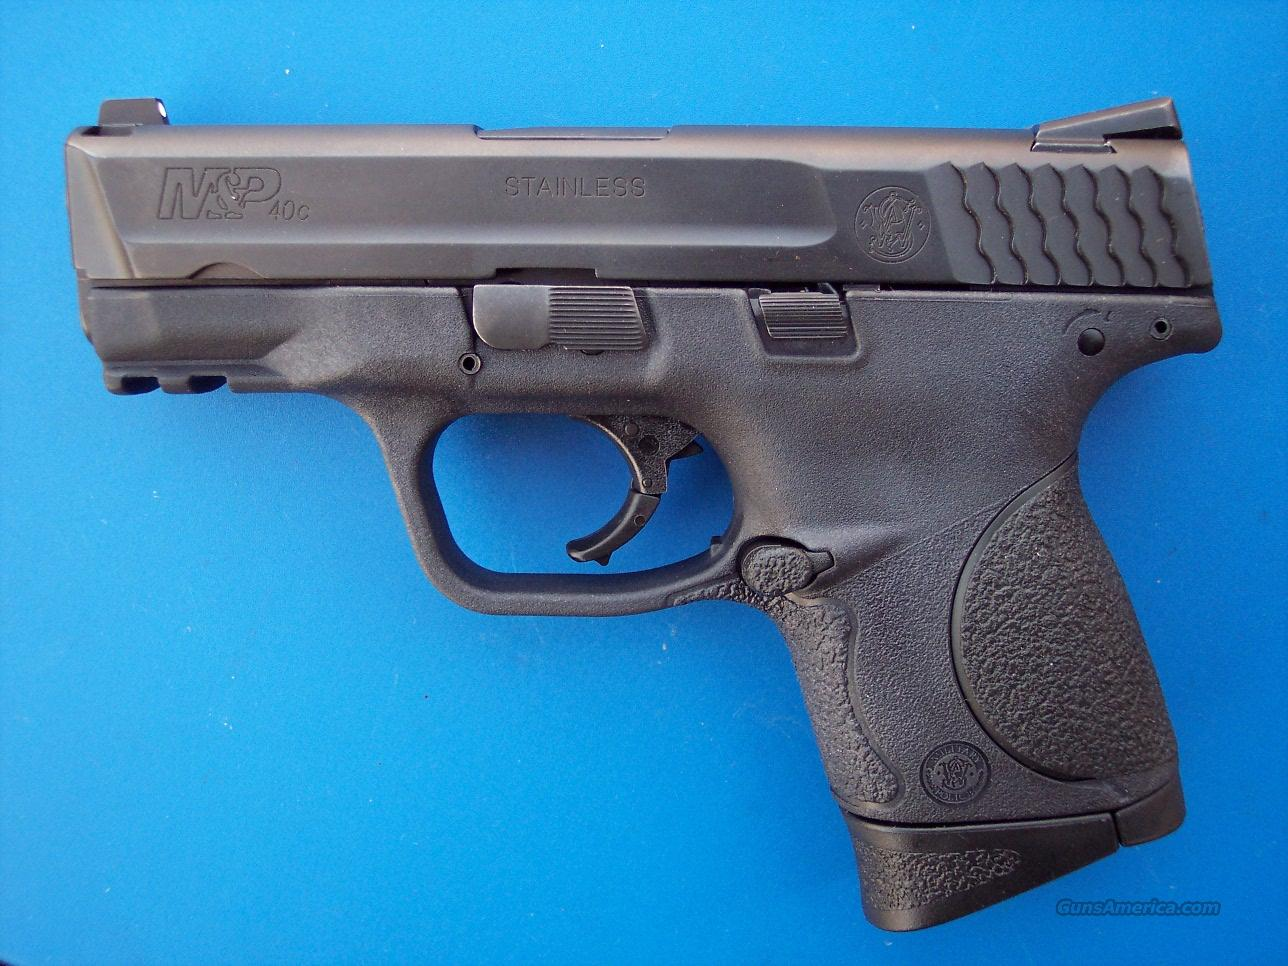 Smith & Wesson M&P 40 Compact 4 mags  Guns > Pistols > Smith & Wesson Pistols - Autos > Polymer Frame